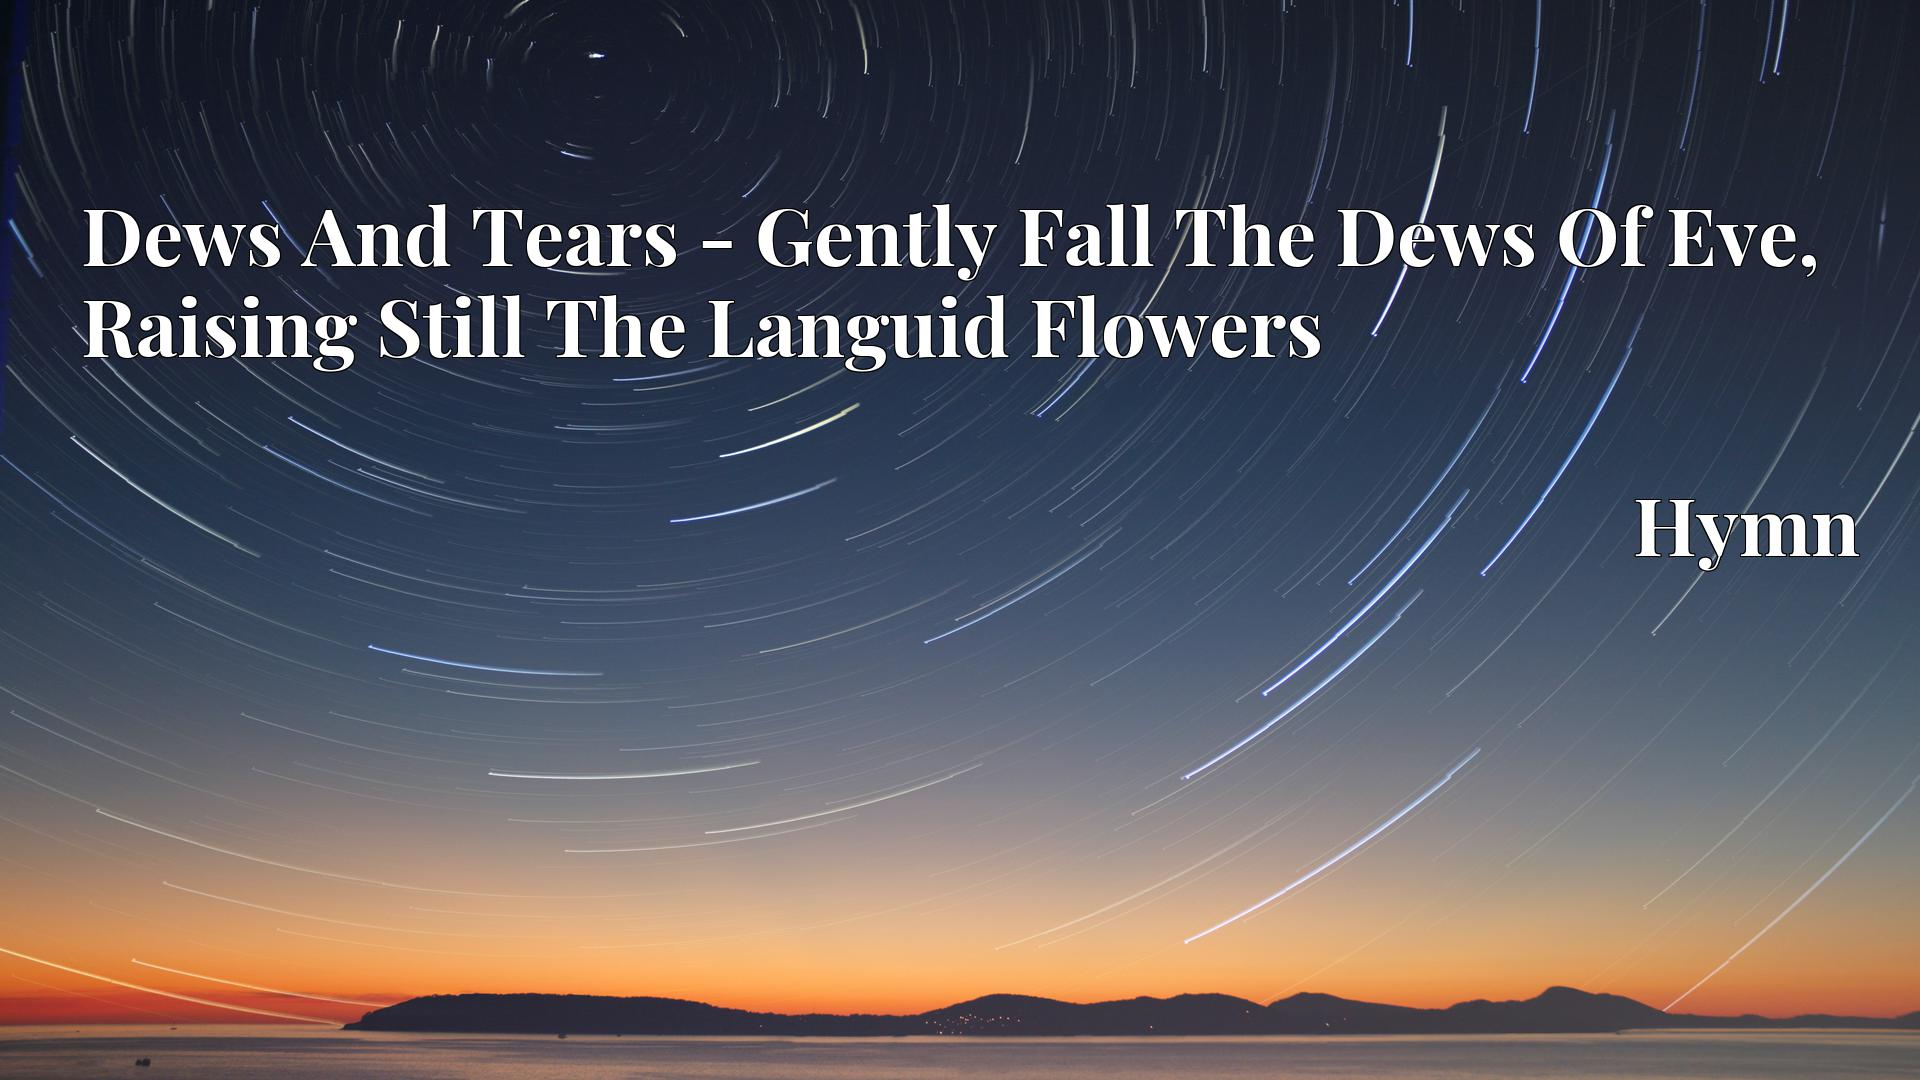 Dews And Tears - Gently Fall The Dews Of Eve, Raising Still The Languid Flowers - Hymn